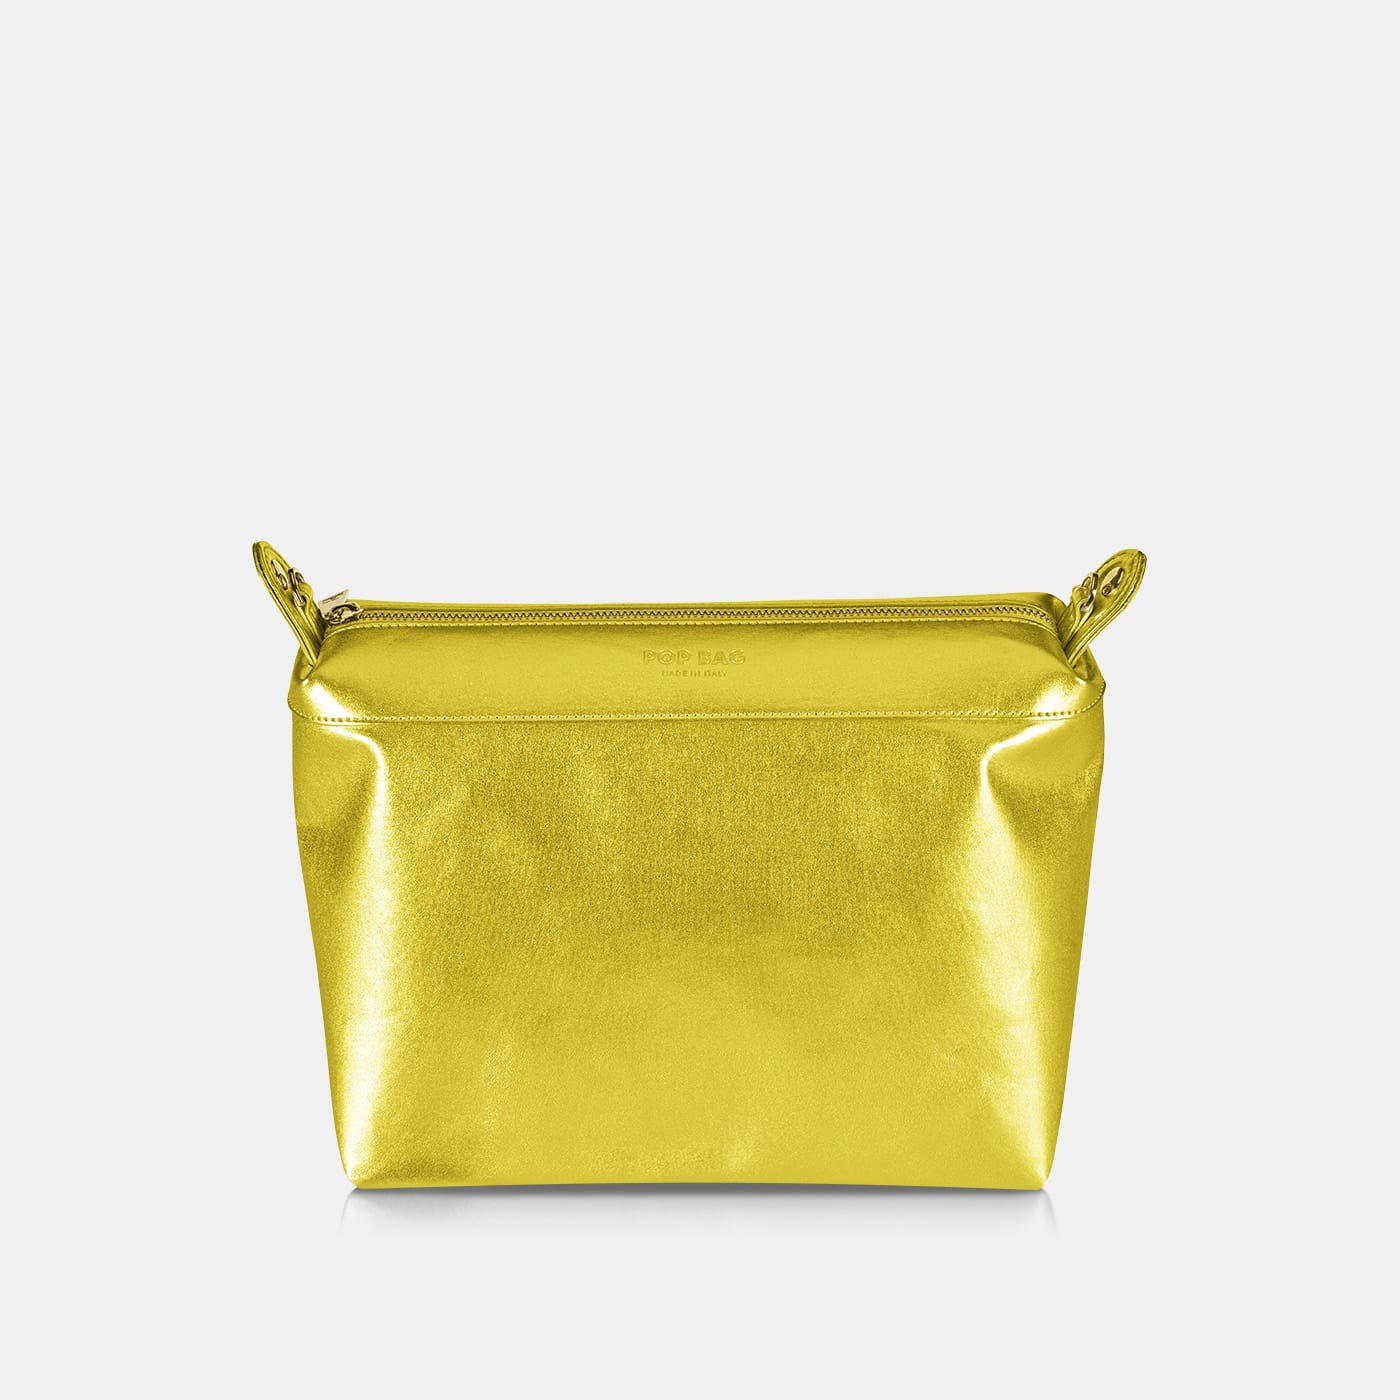 Bag In Bag - Metallic - Lemon Metal - Medium